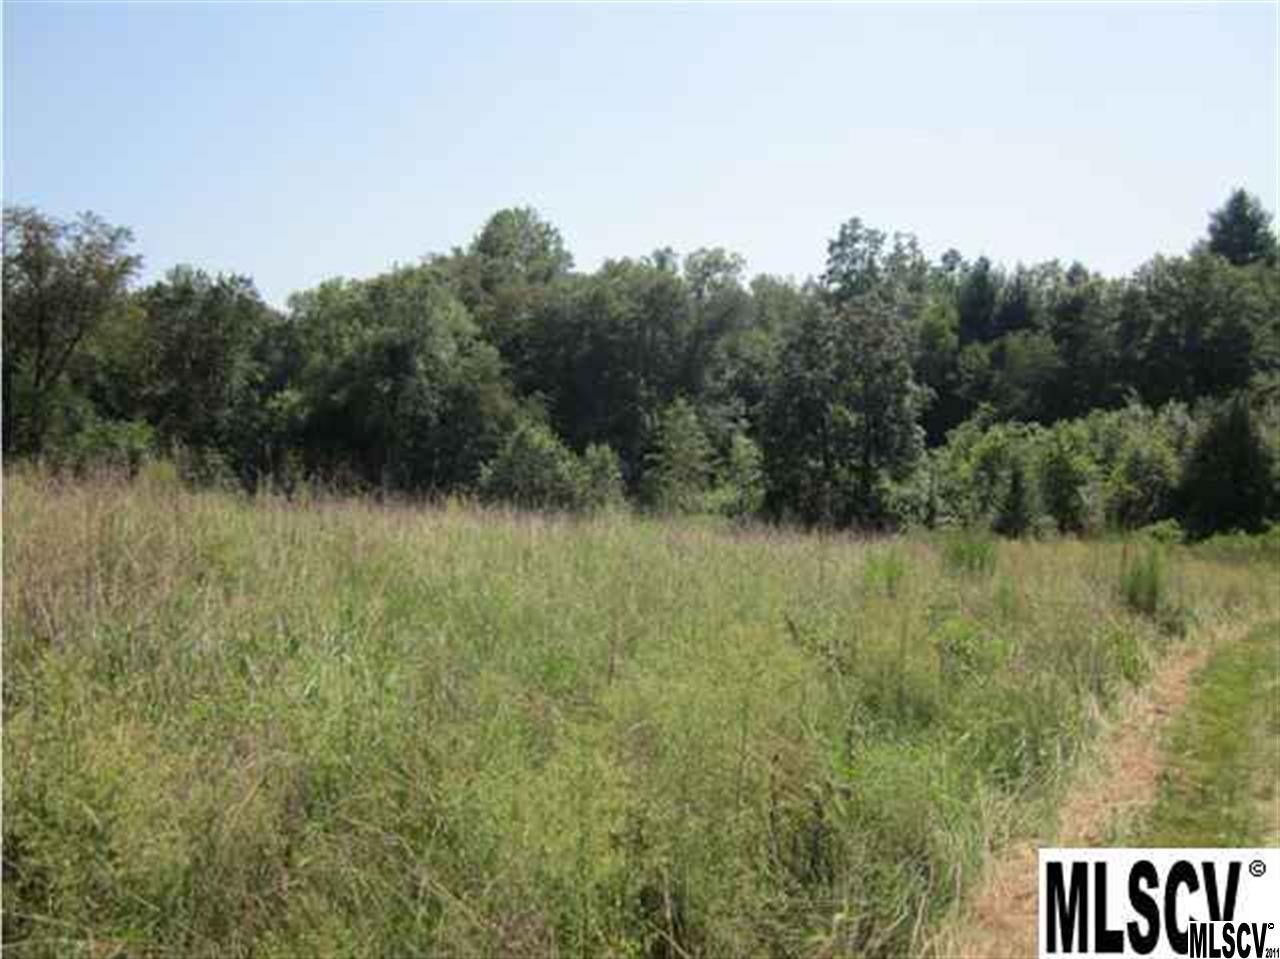 2.38 acres in Hudson, North Carolina